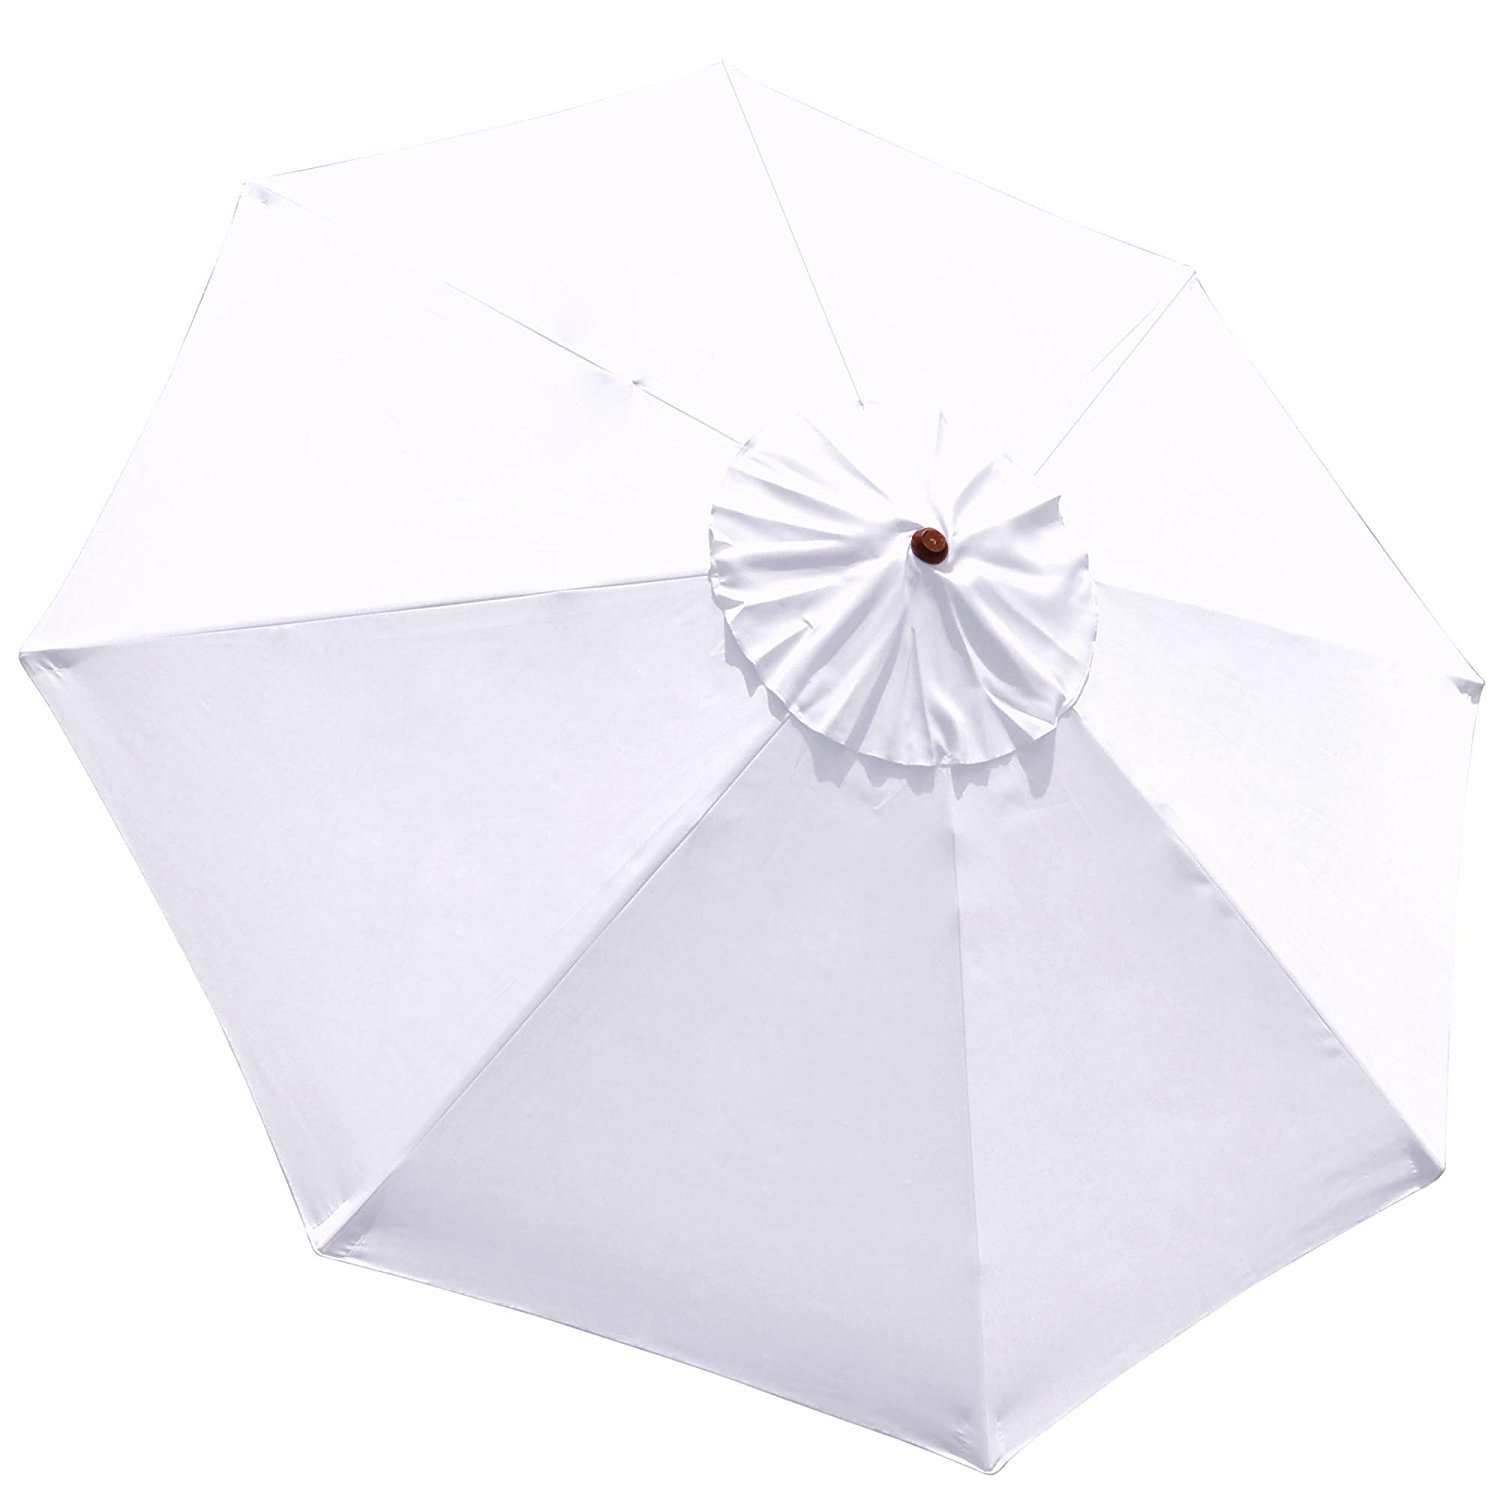 AMPERSAND SHOPS Replacement Canopy Cover for Outdoor Market Patio Umbrellas 9-Ft, 8-Rib (White)